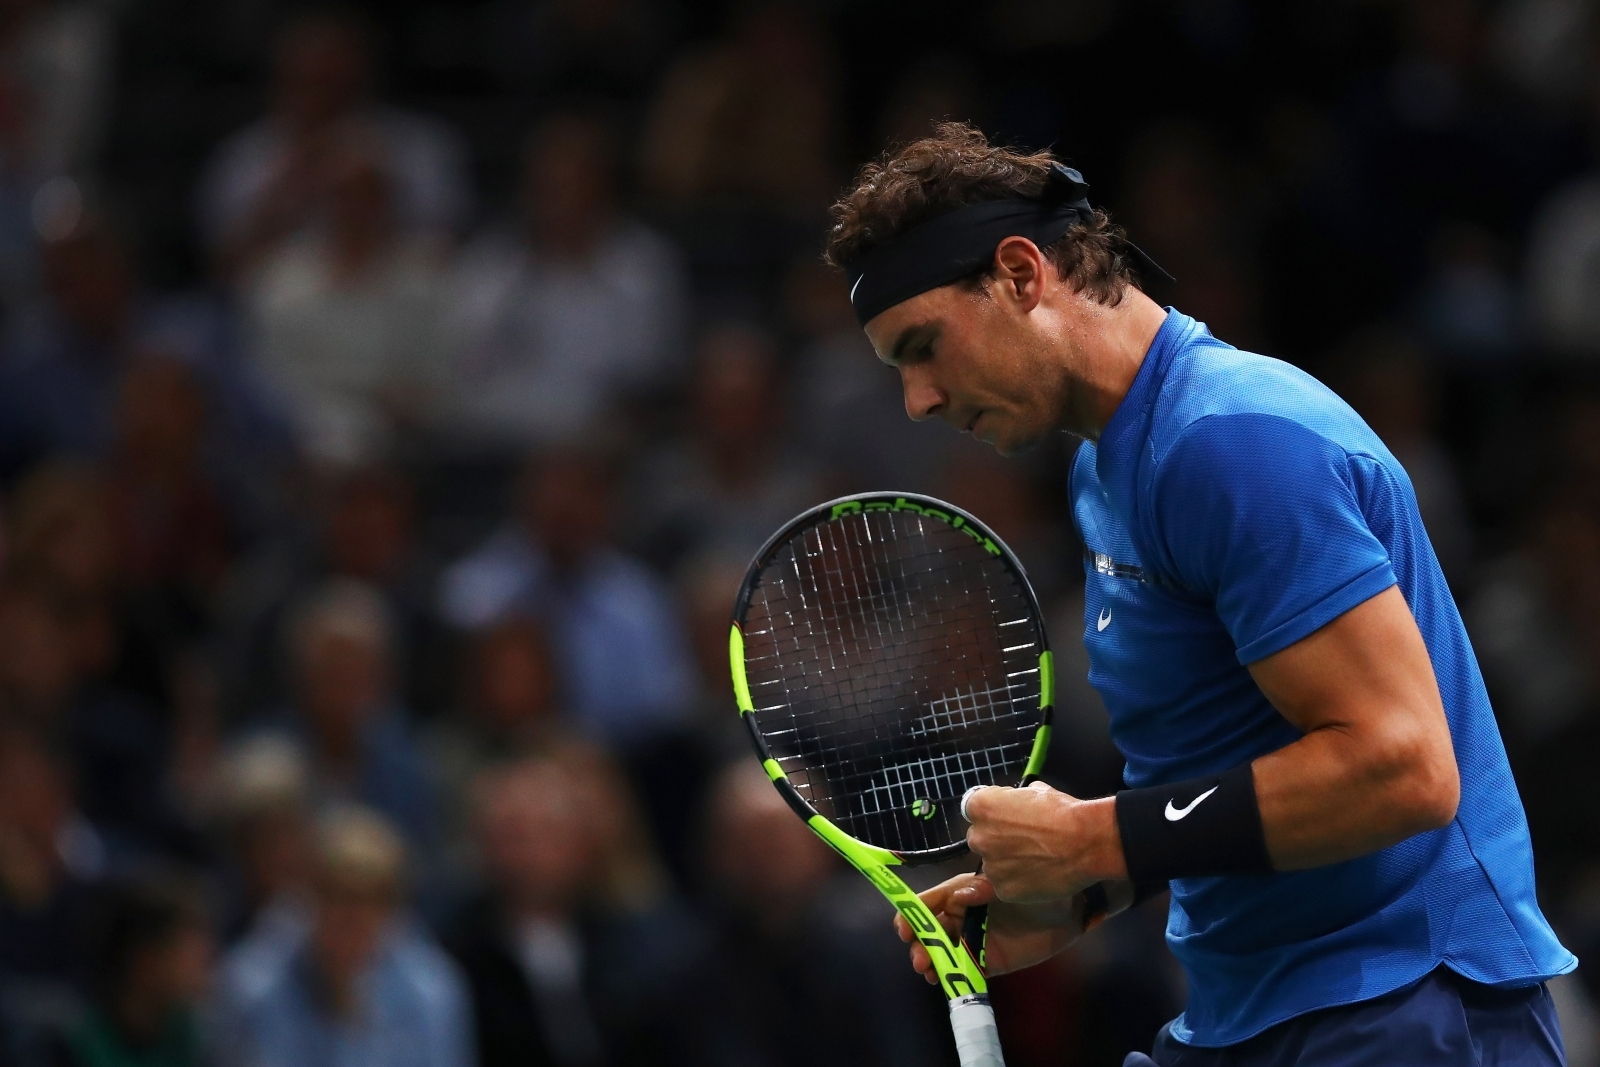 Nadal surprised by return to year-end No. 1